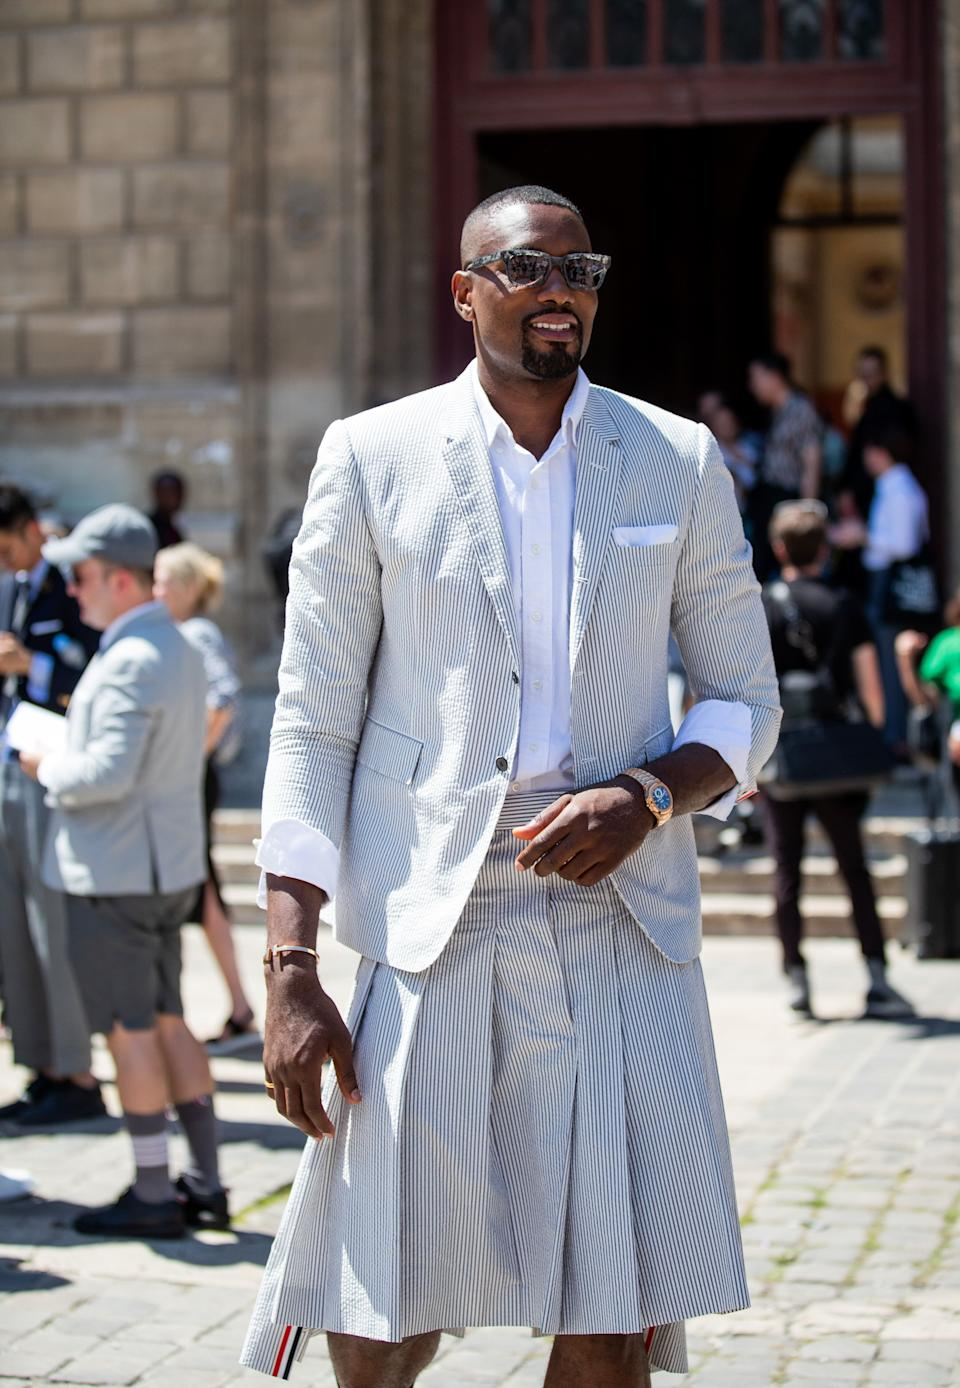 Serge Ibaka outside the Thom Browne Menswear Spring/Summer 2020 show on June 22, 2019 in Paris, France. (Photo: Christian Vierig via Getty Images)